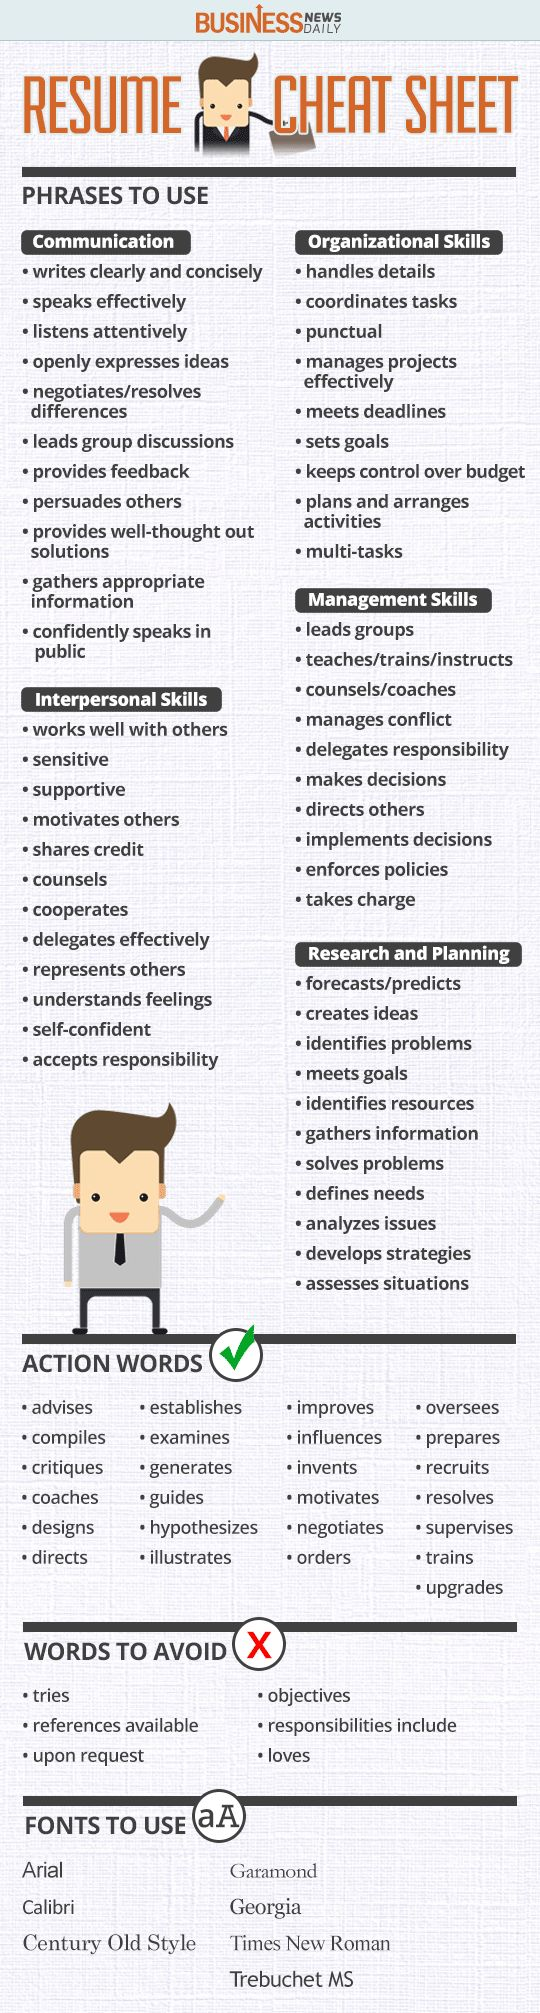 Opposenewapstandardsus  Pleasant  Ideas About Resume On Pinterest  Cv Format Resume  With Hot Resume Cheat Sheet Infographic Andrews Almost Done With A Complete Unit On Employment Which With Charming Resume Summary Of Qualifications Also Best Fonts For Resumes In Addition Customer Service Resumes And Executive Resume Samples As Well As Latex Resume Templates Additionally What Skills To Put On Resume From Pinterestcom With Opposenewapstandardsus  Hot  Ideas About Resume On Pinterest  Cv Format Resume  With Charming Resume Cheat Sheet Infographic Andrews Almost Done With A Complete Unit On Employment Which And Pleasant Resume Summary Of Qualifications Also Best Fonts For Resumes In Addition Customer Service Resumes From Pinterestcom